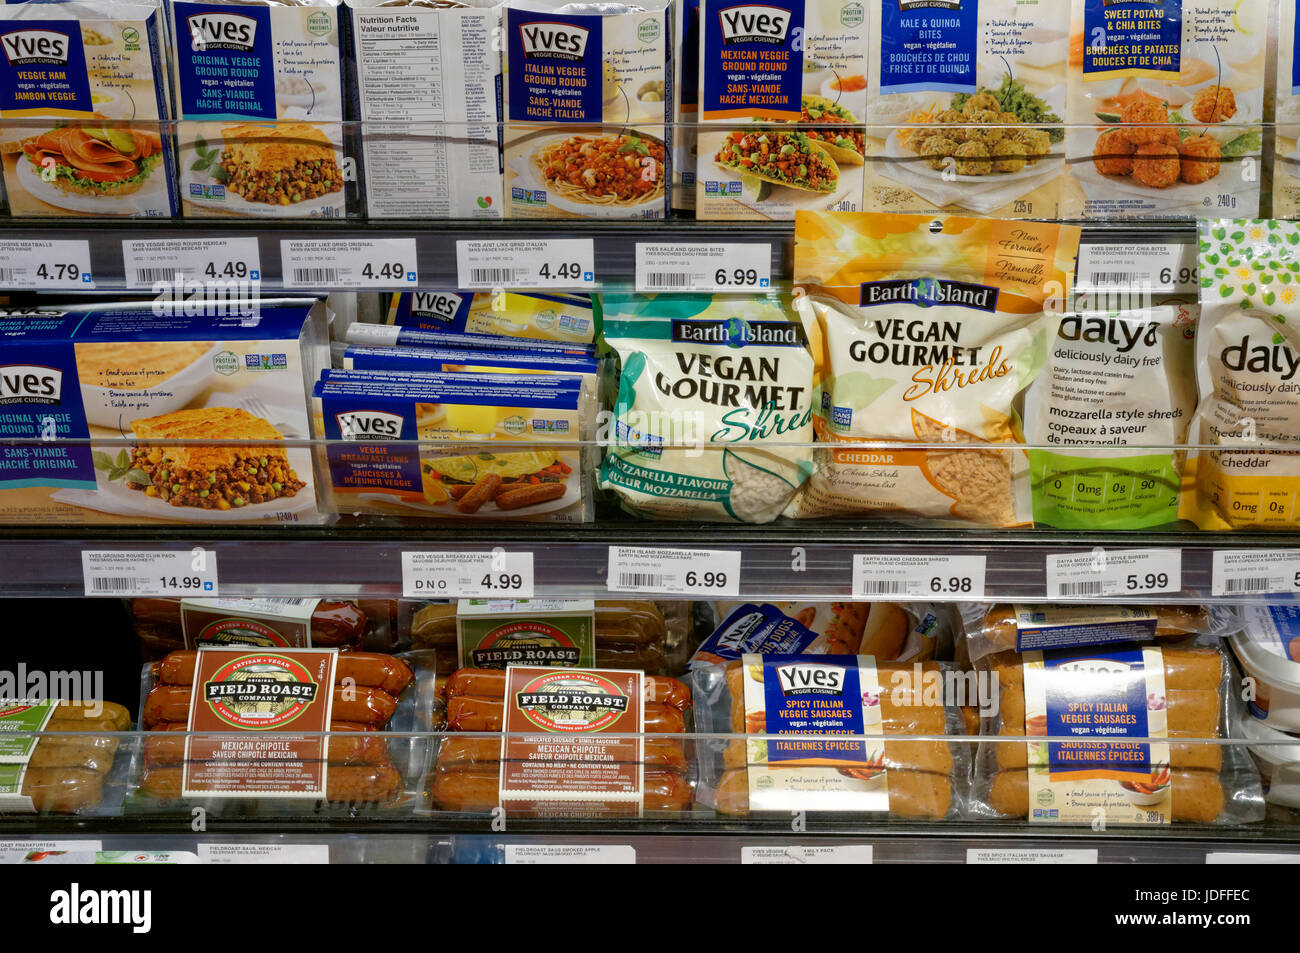 Packaged vegan food products for sale in a grocery store, Vancouver, British Columbia, Canada - Stock Image